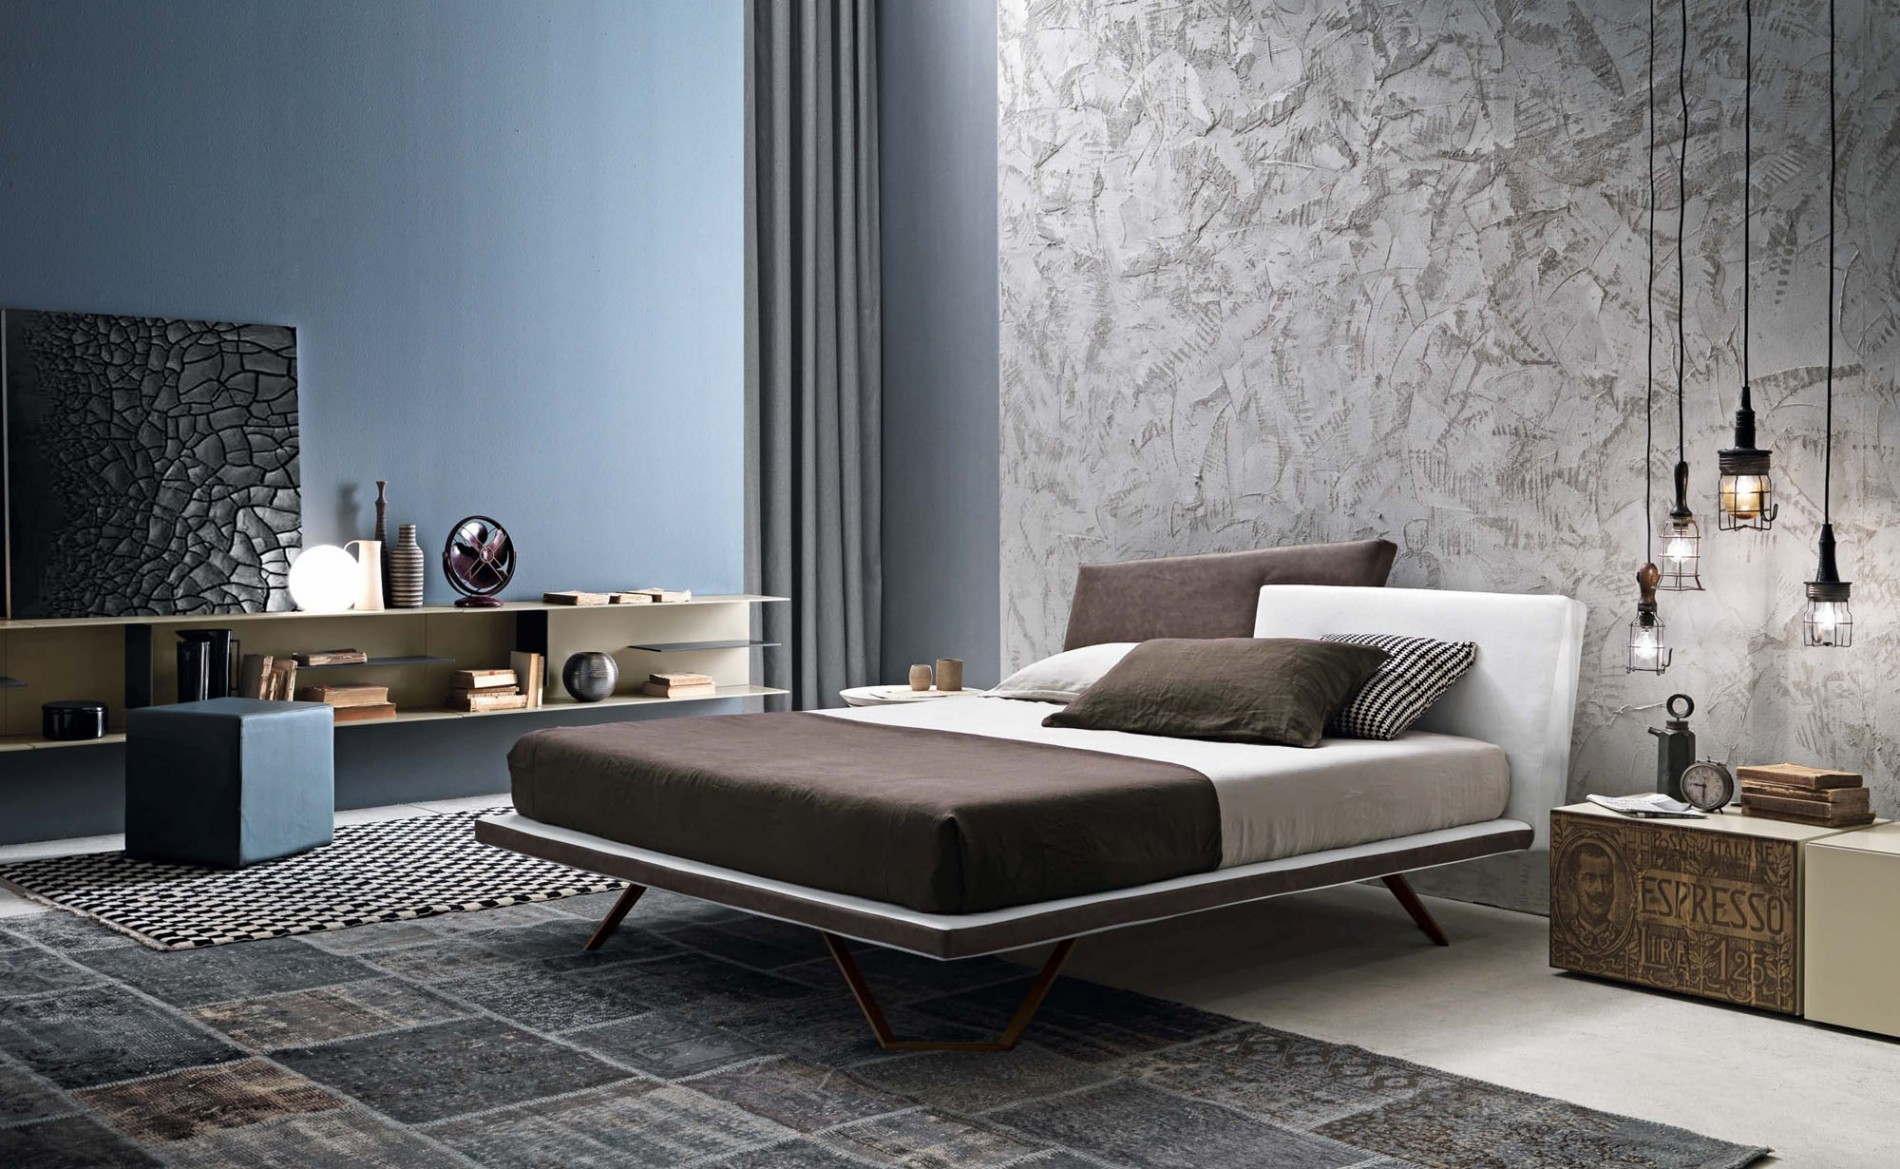 Meeting Presotto Bed Lartdevivre Online Furnishing